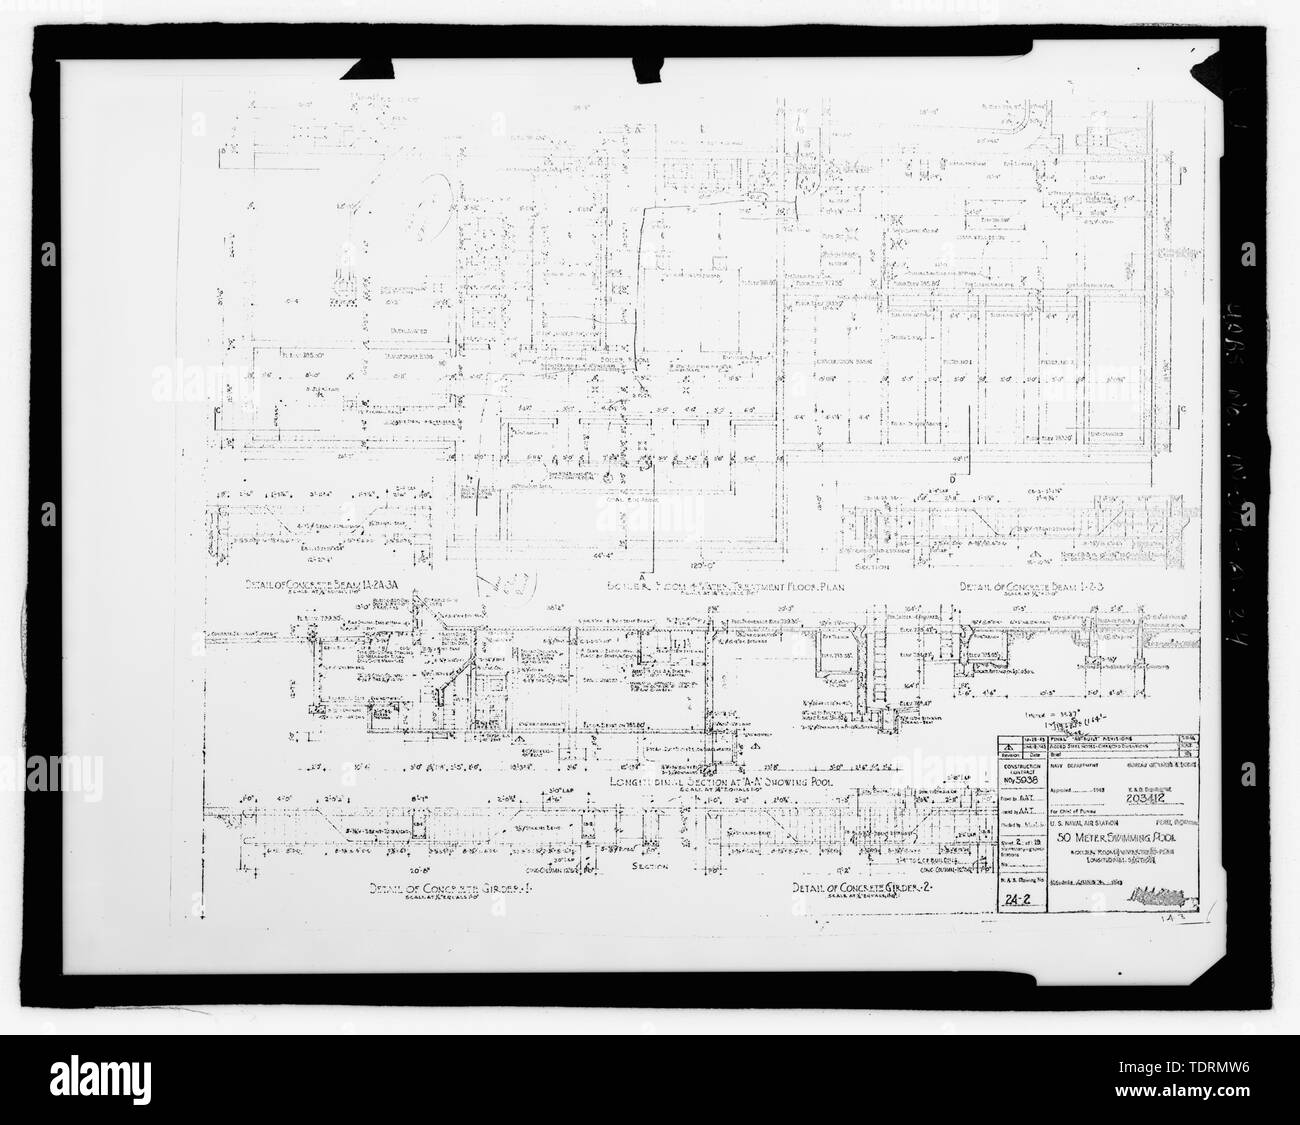 Photographic copy of original construction drawing (dated 1943). Boiler room and water treatment plant longitudinal section - Grissom Air Force Base, Building No. 143, Peru, Miami County, IN; Air Force Base Conversion Agency; U.S. Department of the Navy; Hardlines Design Company, contractor; Portage Environmental, Incorporated (PEI), contractor; Kumar, Rebecca, transmitter; Bates, Jeff, photographer; Atkins, Parker, historian; Lyman, Malini, historian Stock Photo